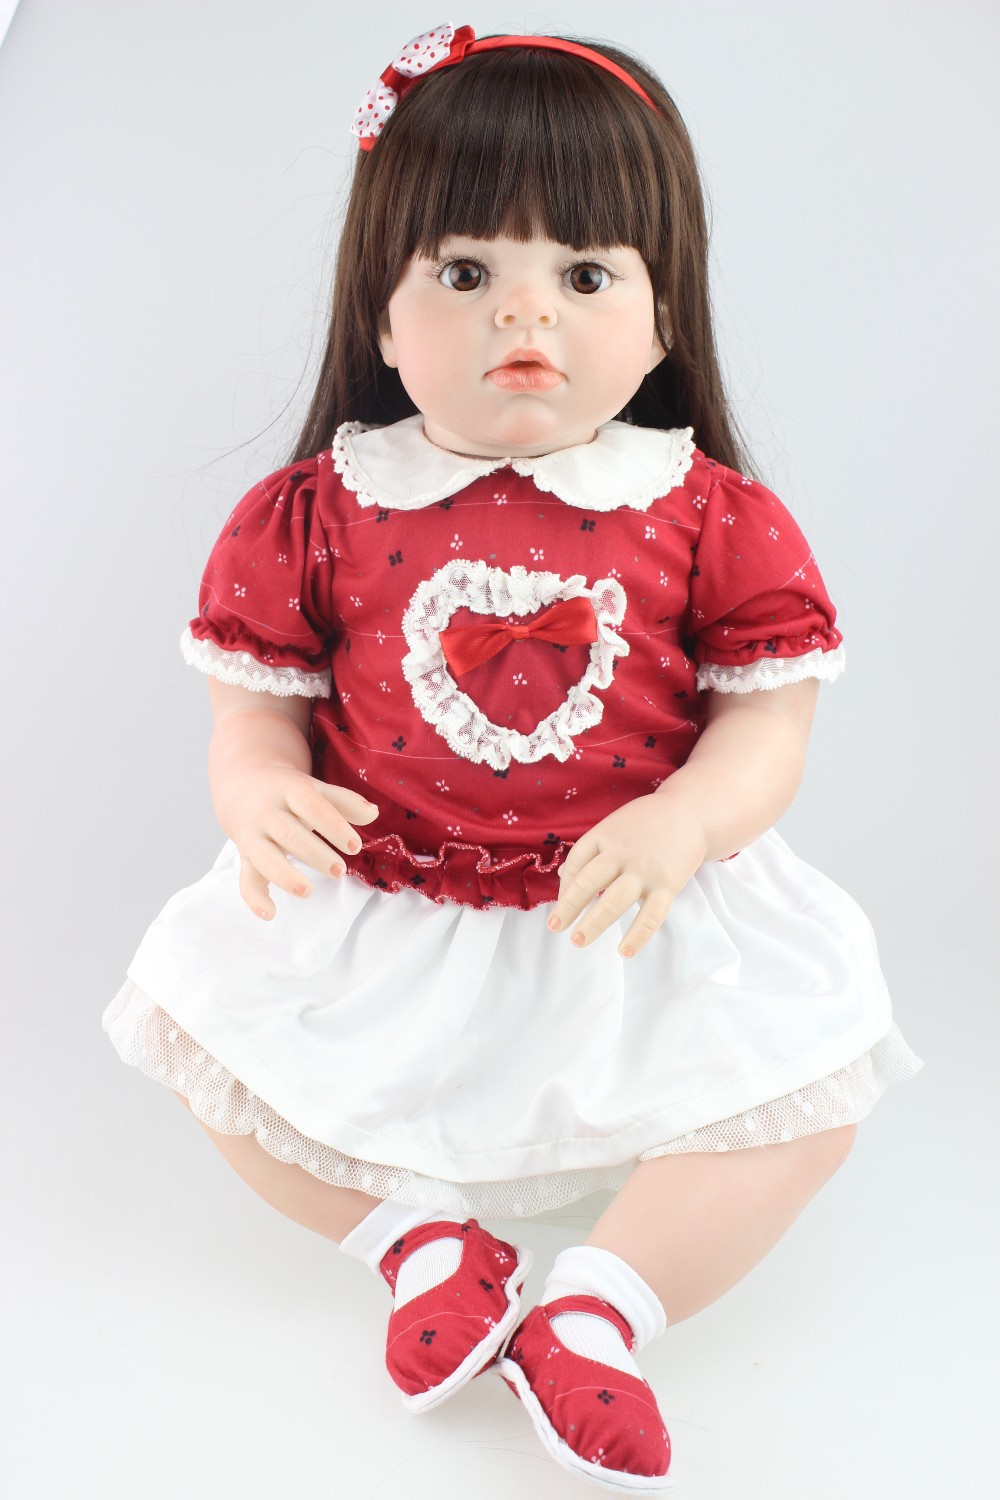 New design hot -selling lifelike reborn toddler doll soft silicone vinyl real gentle touch 28inches new fashion design reborn toddler doll rooted hair soft silicone vinyl real gentle touch 28inches fashion gift for birthday